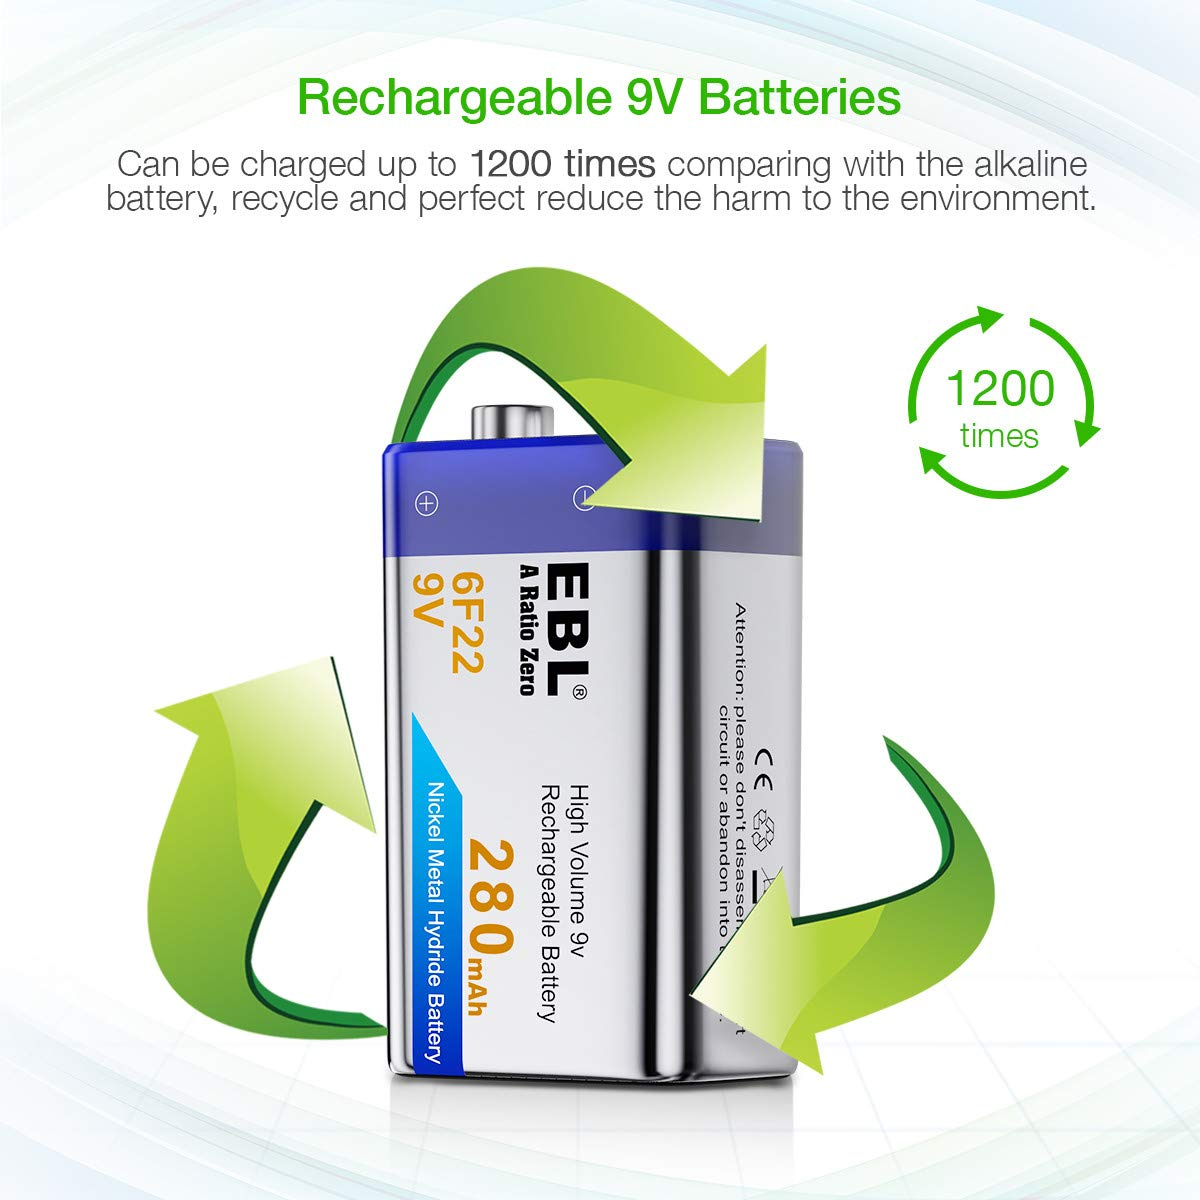 Ebl 9v Rechargeable Batteries Nimh Everyday 280mah Alkaline Battery Charger Circuit For Smoke Alarm Detector 4 Packs Electronics